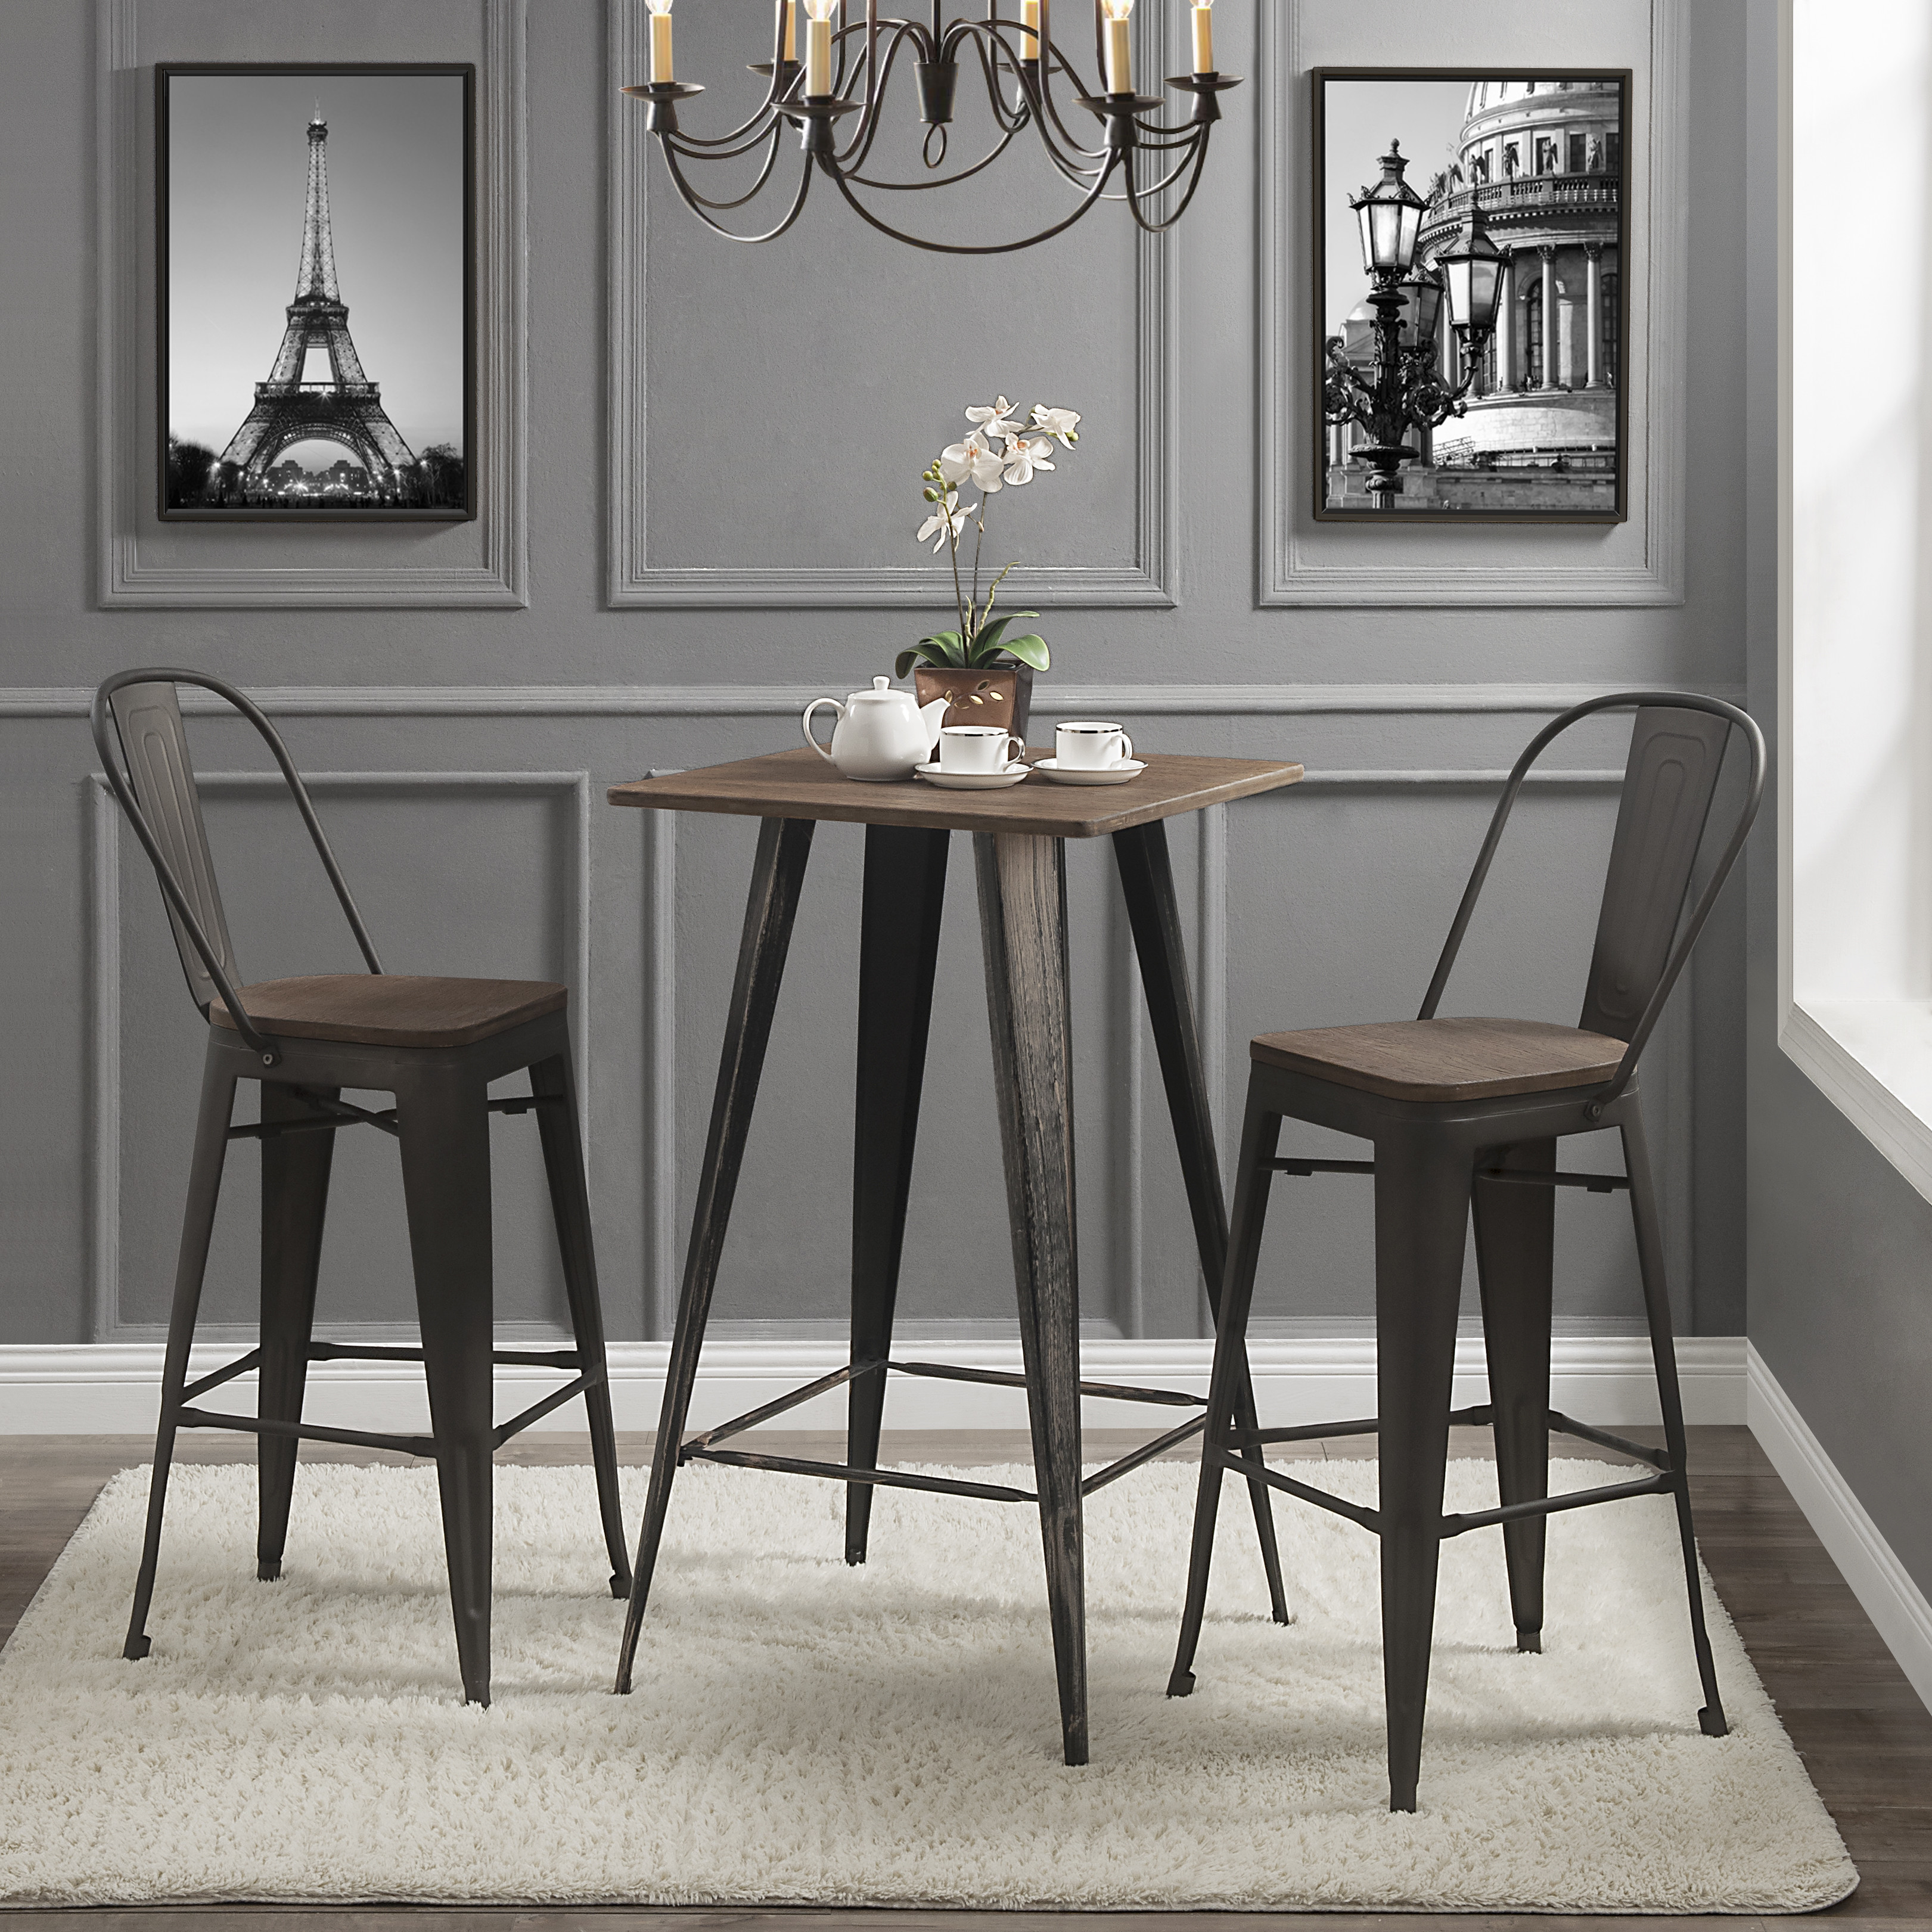 9 Piece Kitchen Table Set, Industrial Wooden Bar Table and Chairs Dining  Set, Kitchen Counter Height Dining Table Set with 9 Bar Stools, Small Space  ...